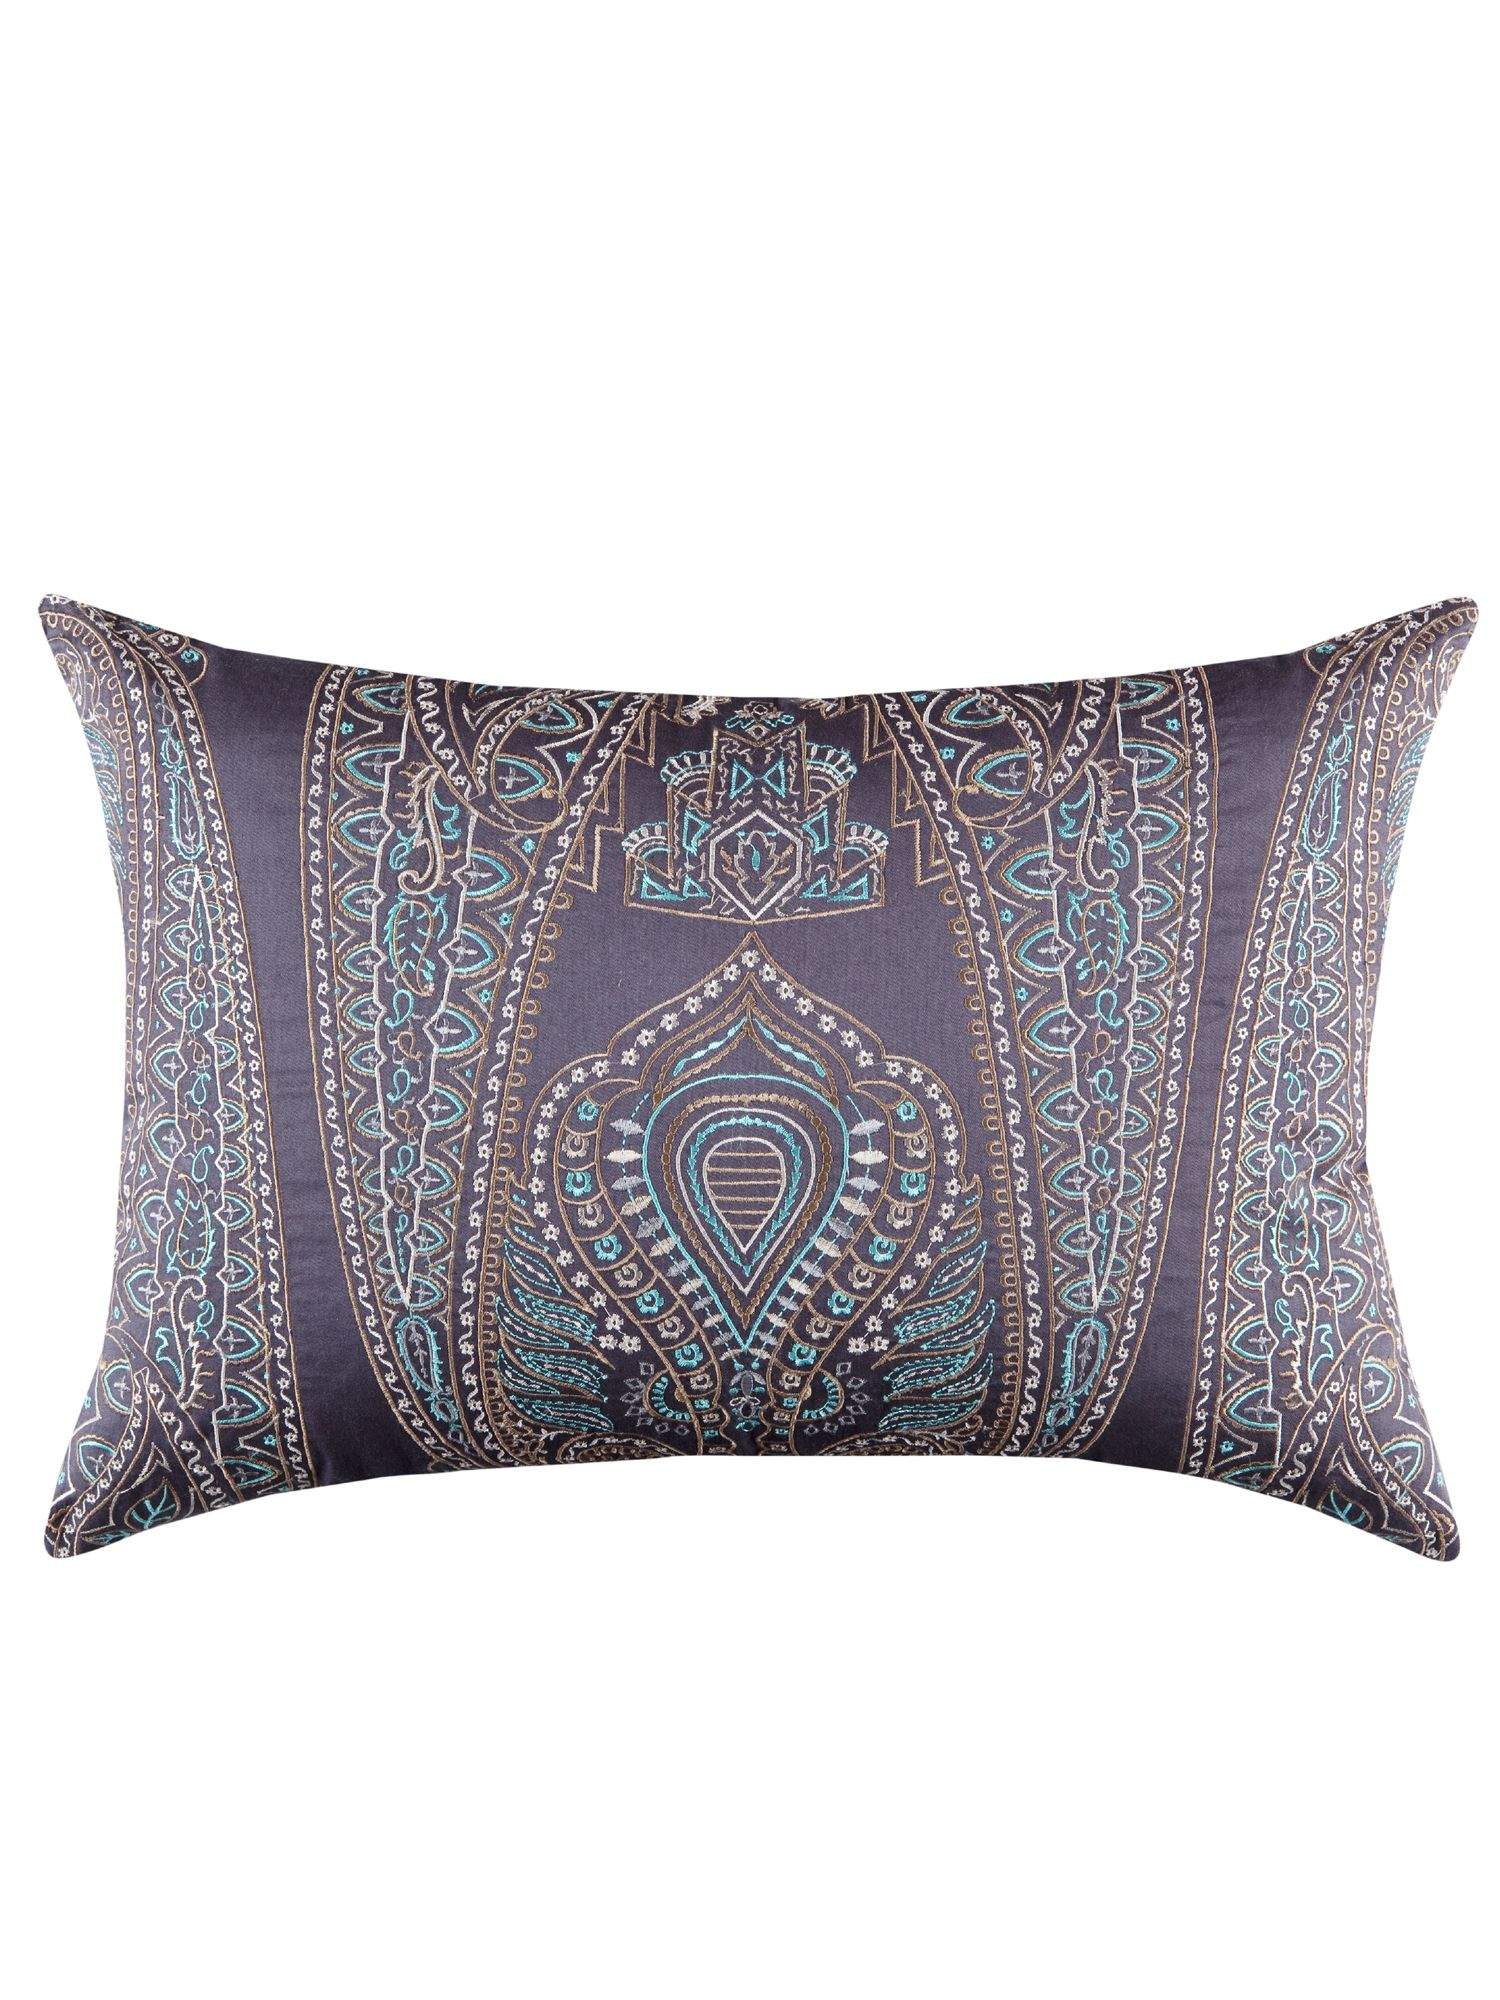 Persia cushion 35x50cm teal